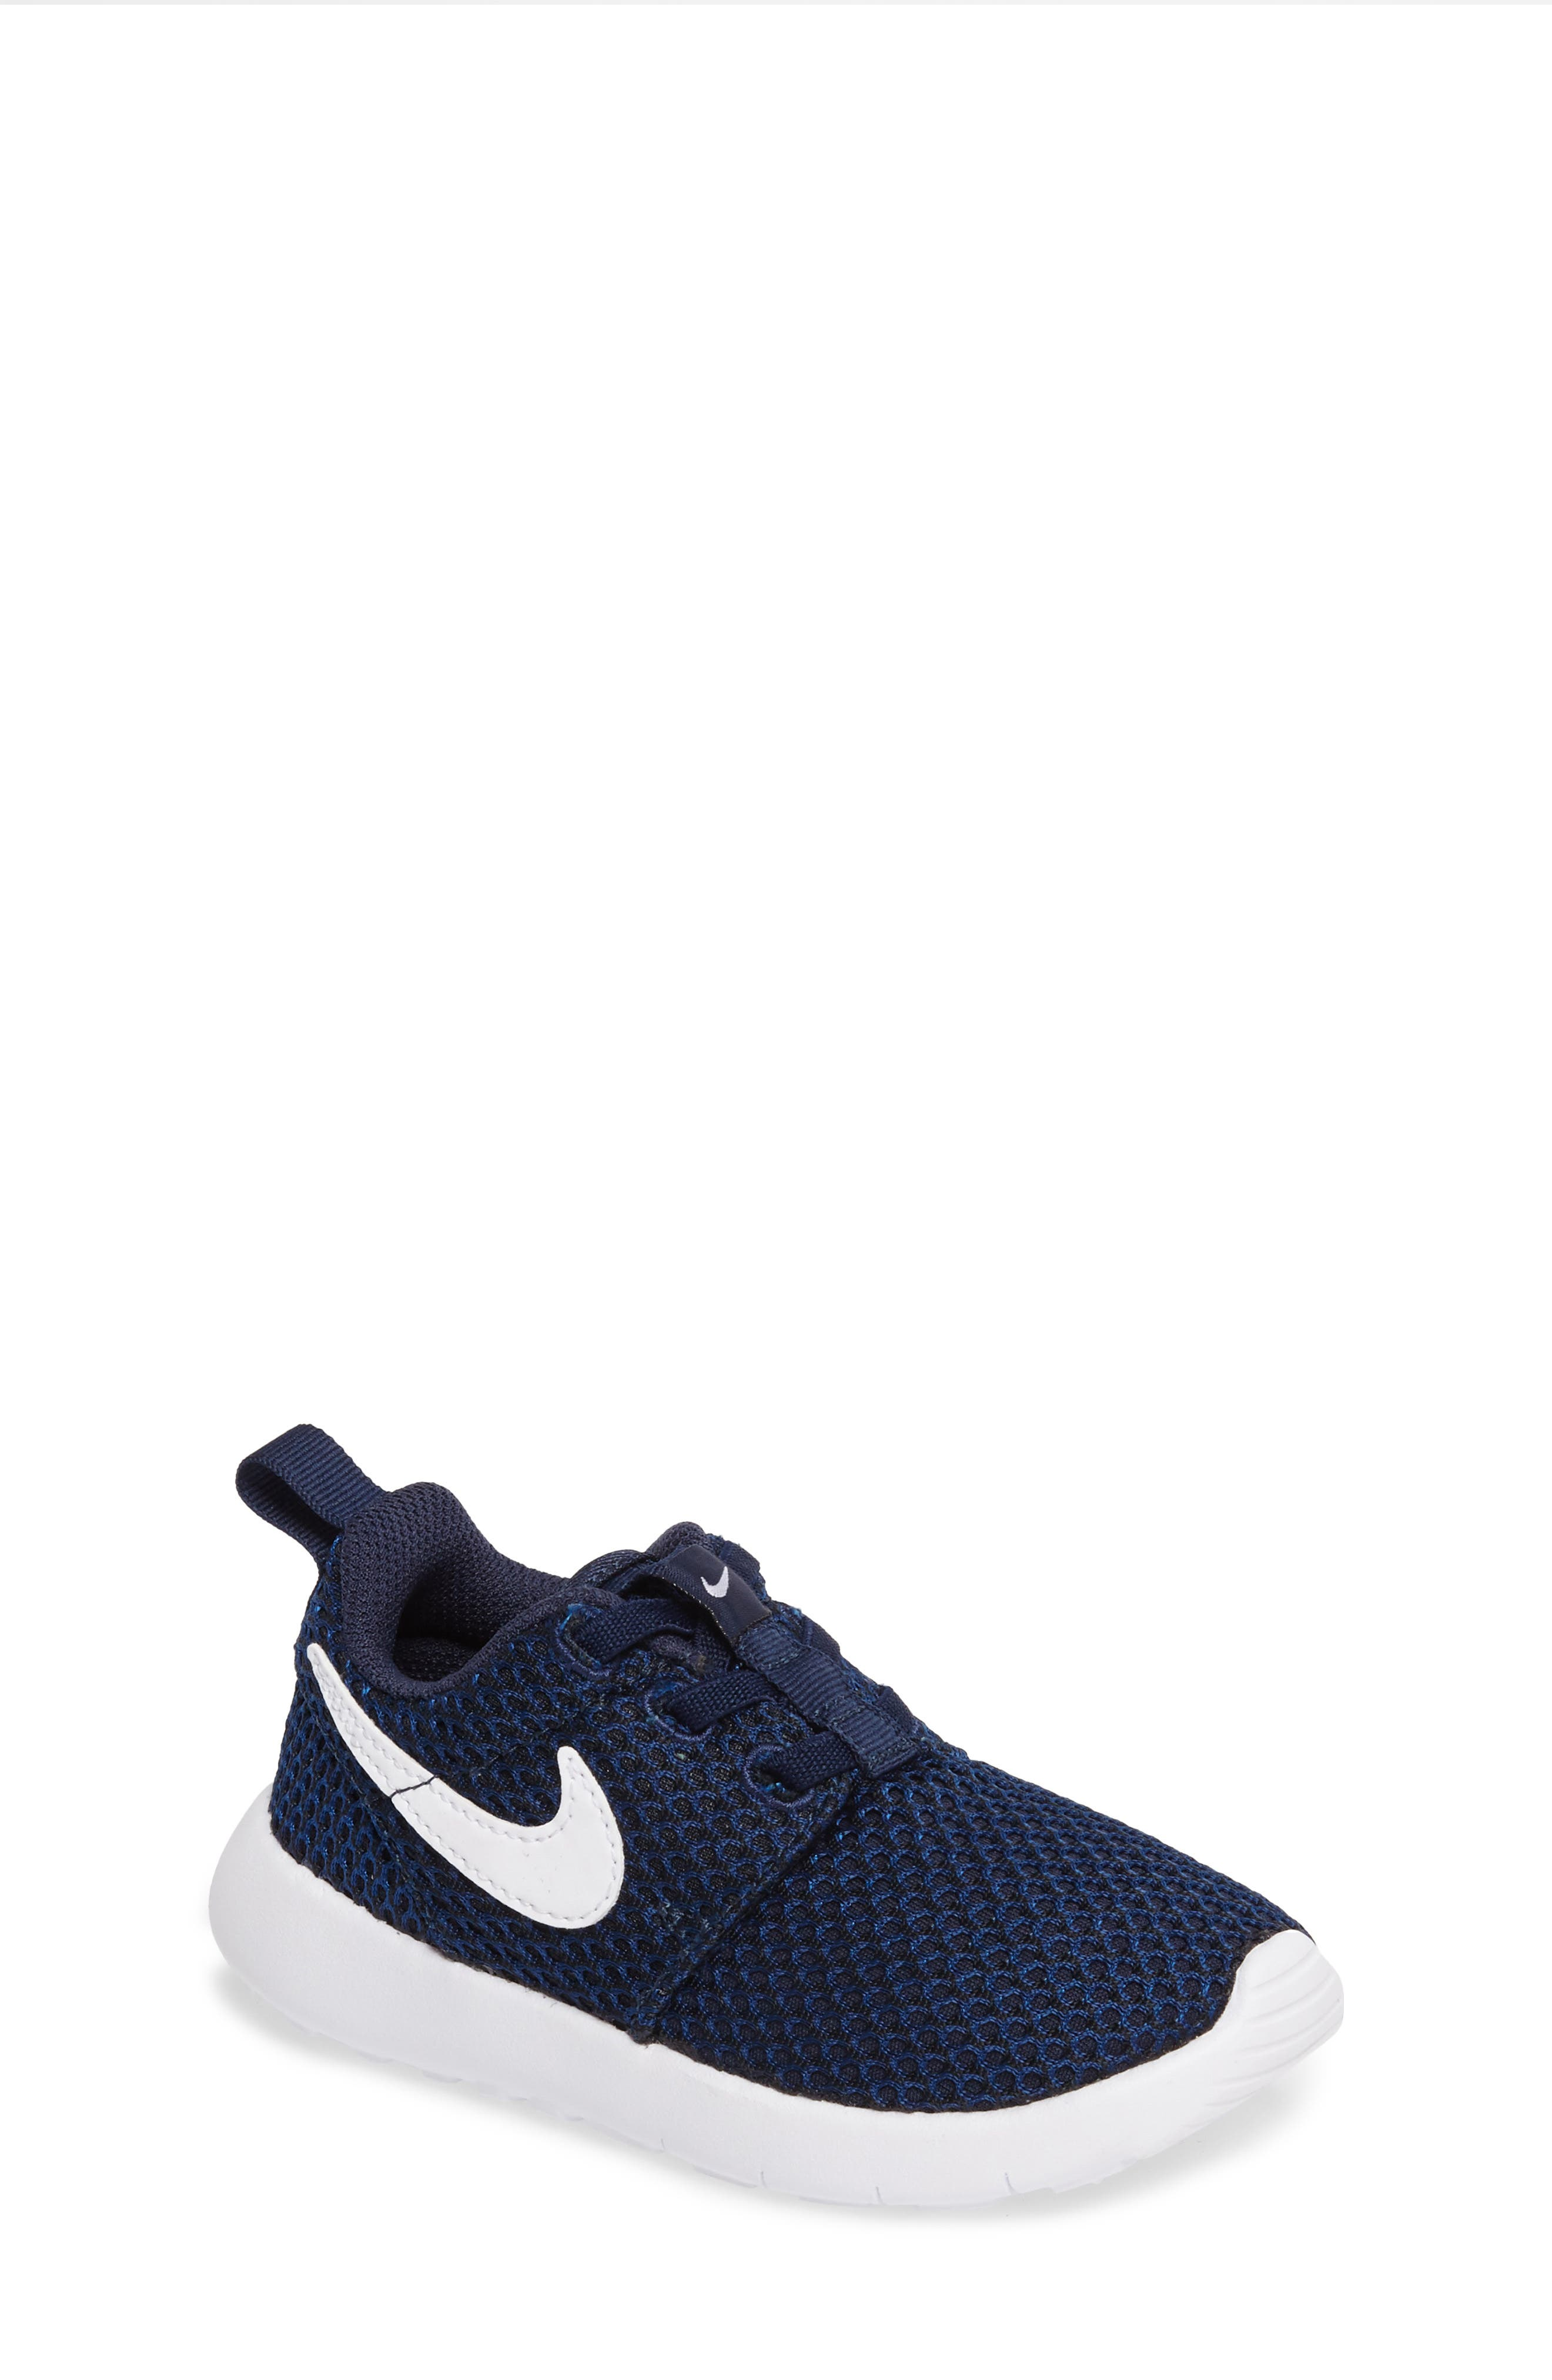 Main Image - Nike 'Roshe Run' Sneaker (Baby, Walker & Toddler)